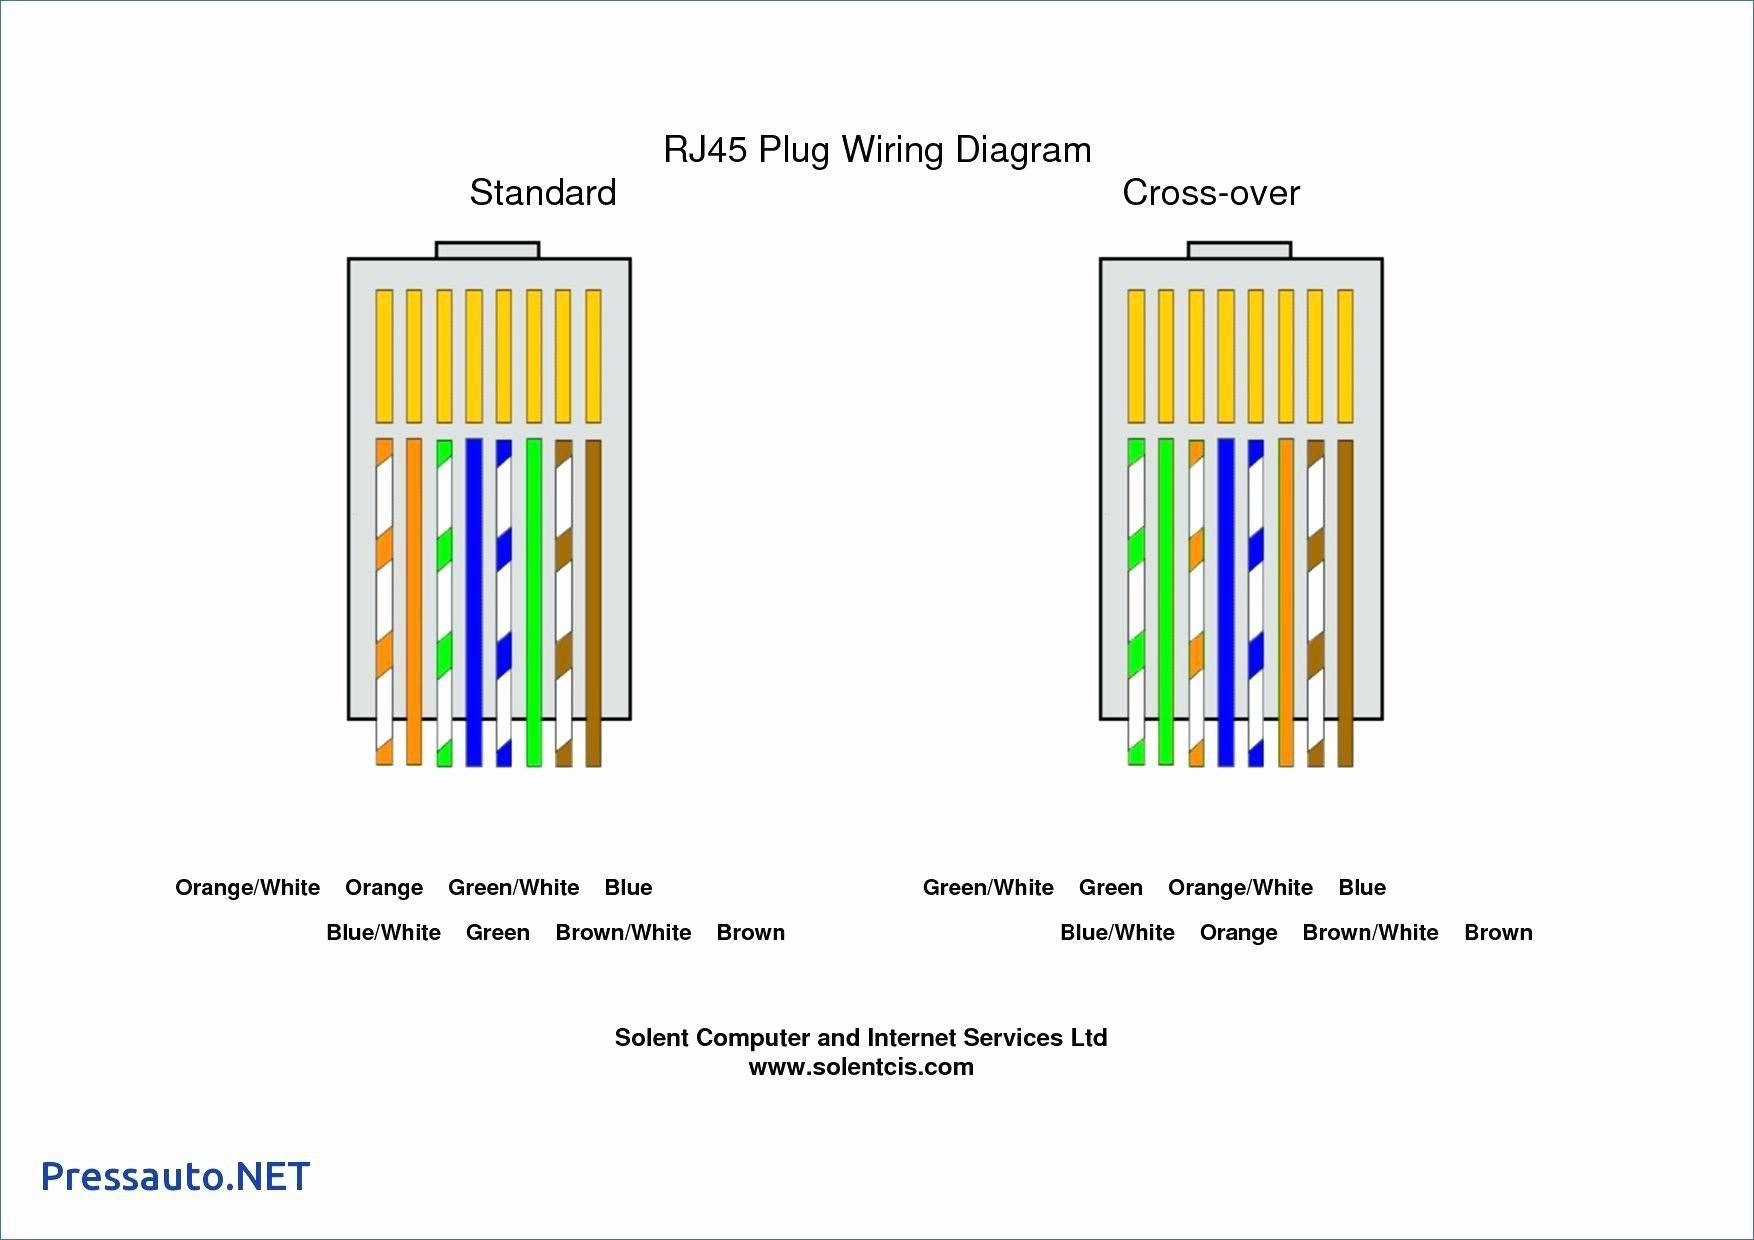 New Wiring Diagram Of Ethernet Cable Diagram Diagramsample Diagramtemplate Wiringdiagram Diagramchart Worksheet Worksheettemp Diagram Wire Diagram Chart